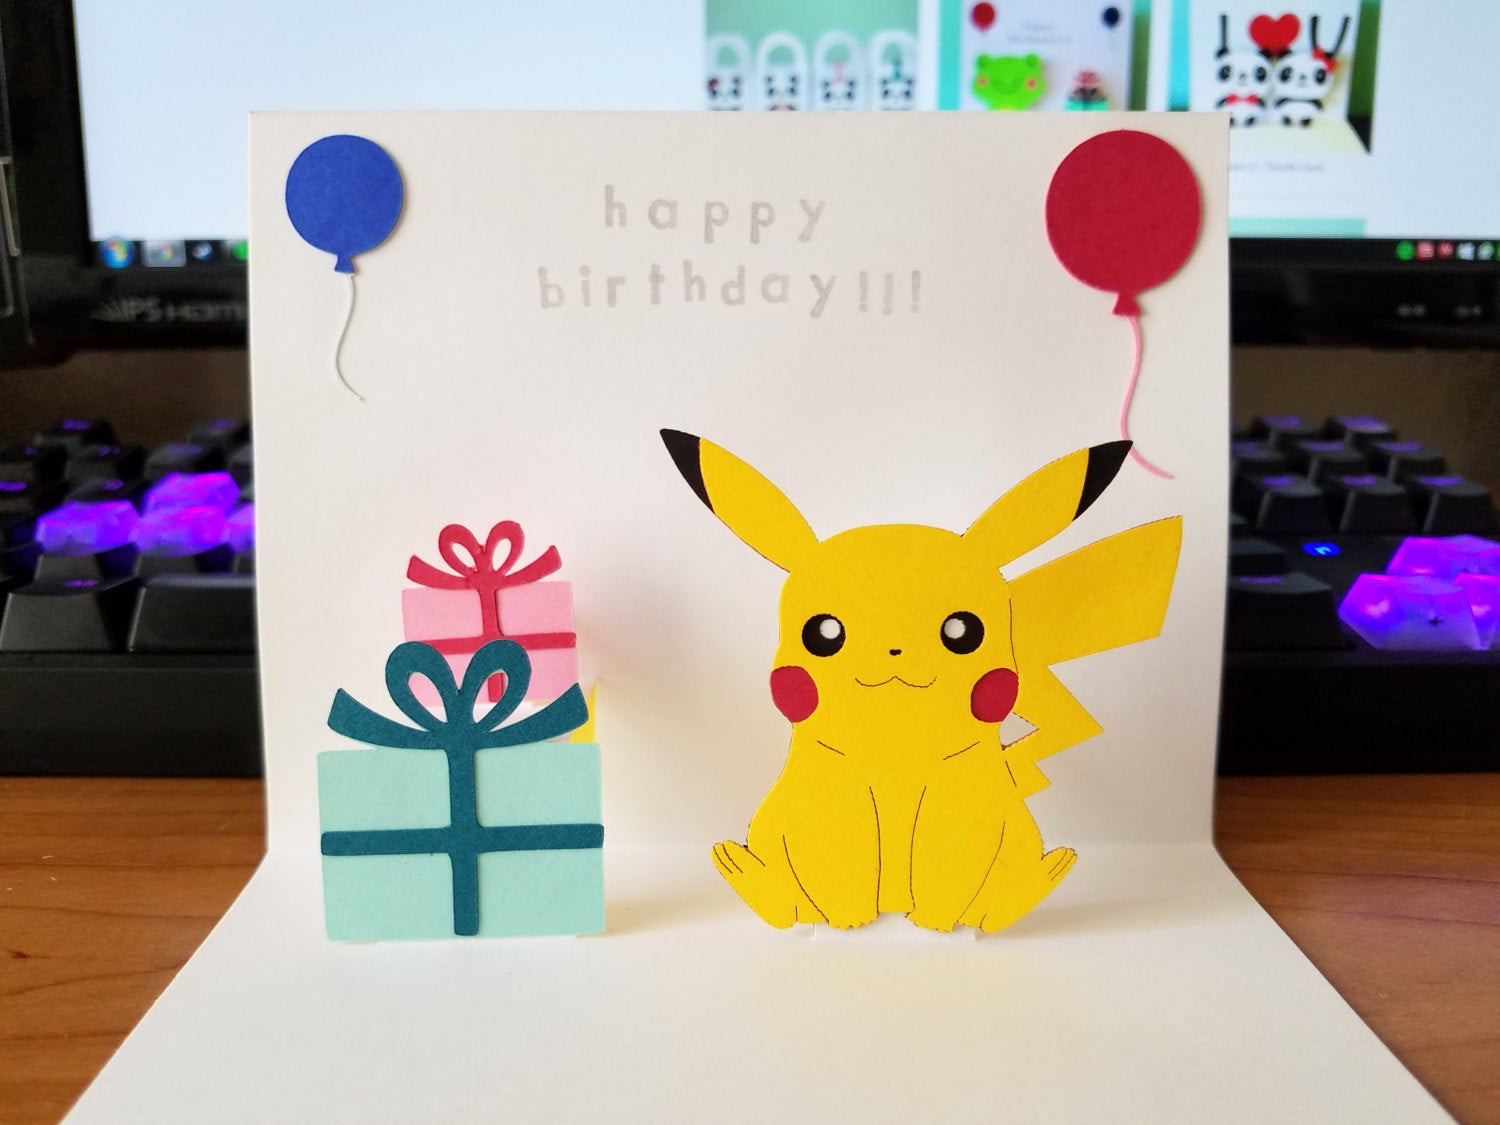 Best ideas about Pikachu Birthday Card . Save or Pin Pop Up Card Pikachu Happy Birthday Now.